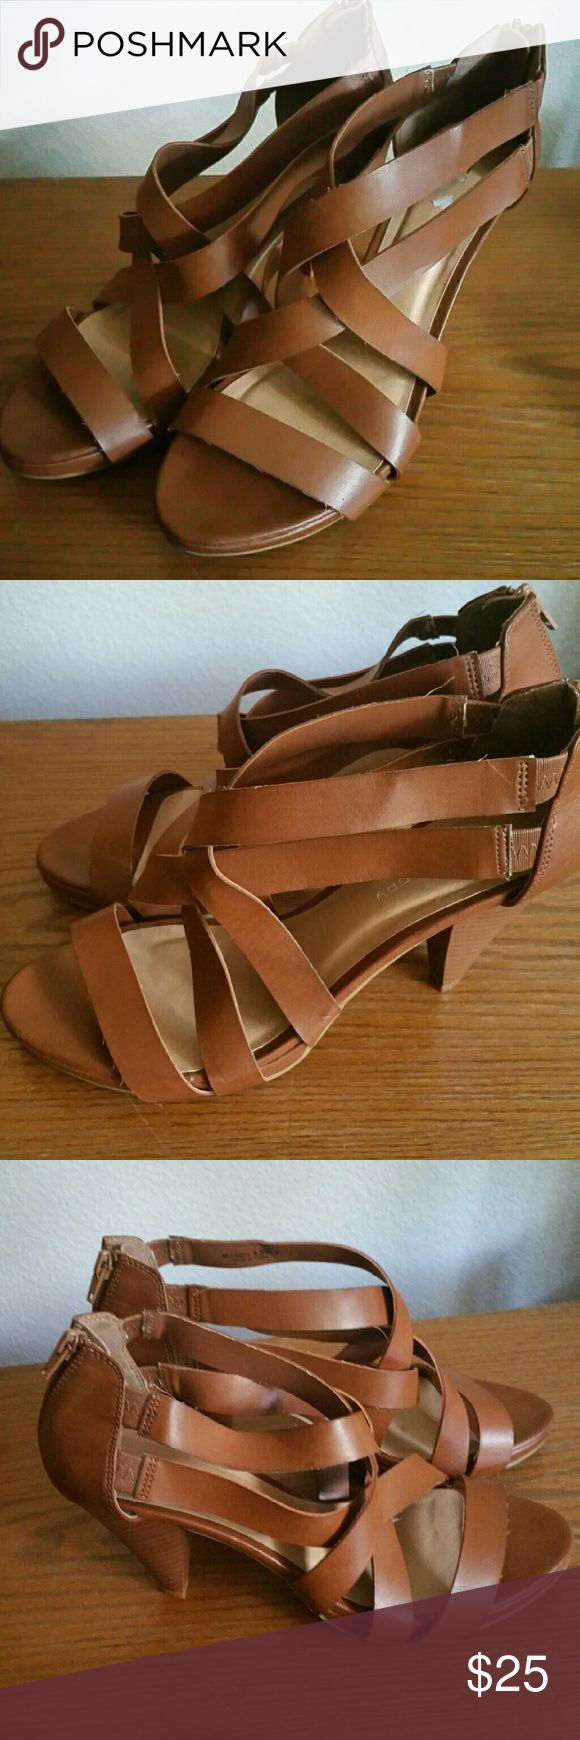 Reduced-Ladies strappy heels Brown strappy heels, never worn.. Add'l pics available upon request.. Shoes Heels